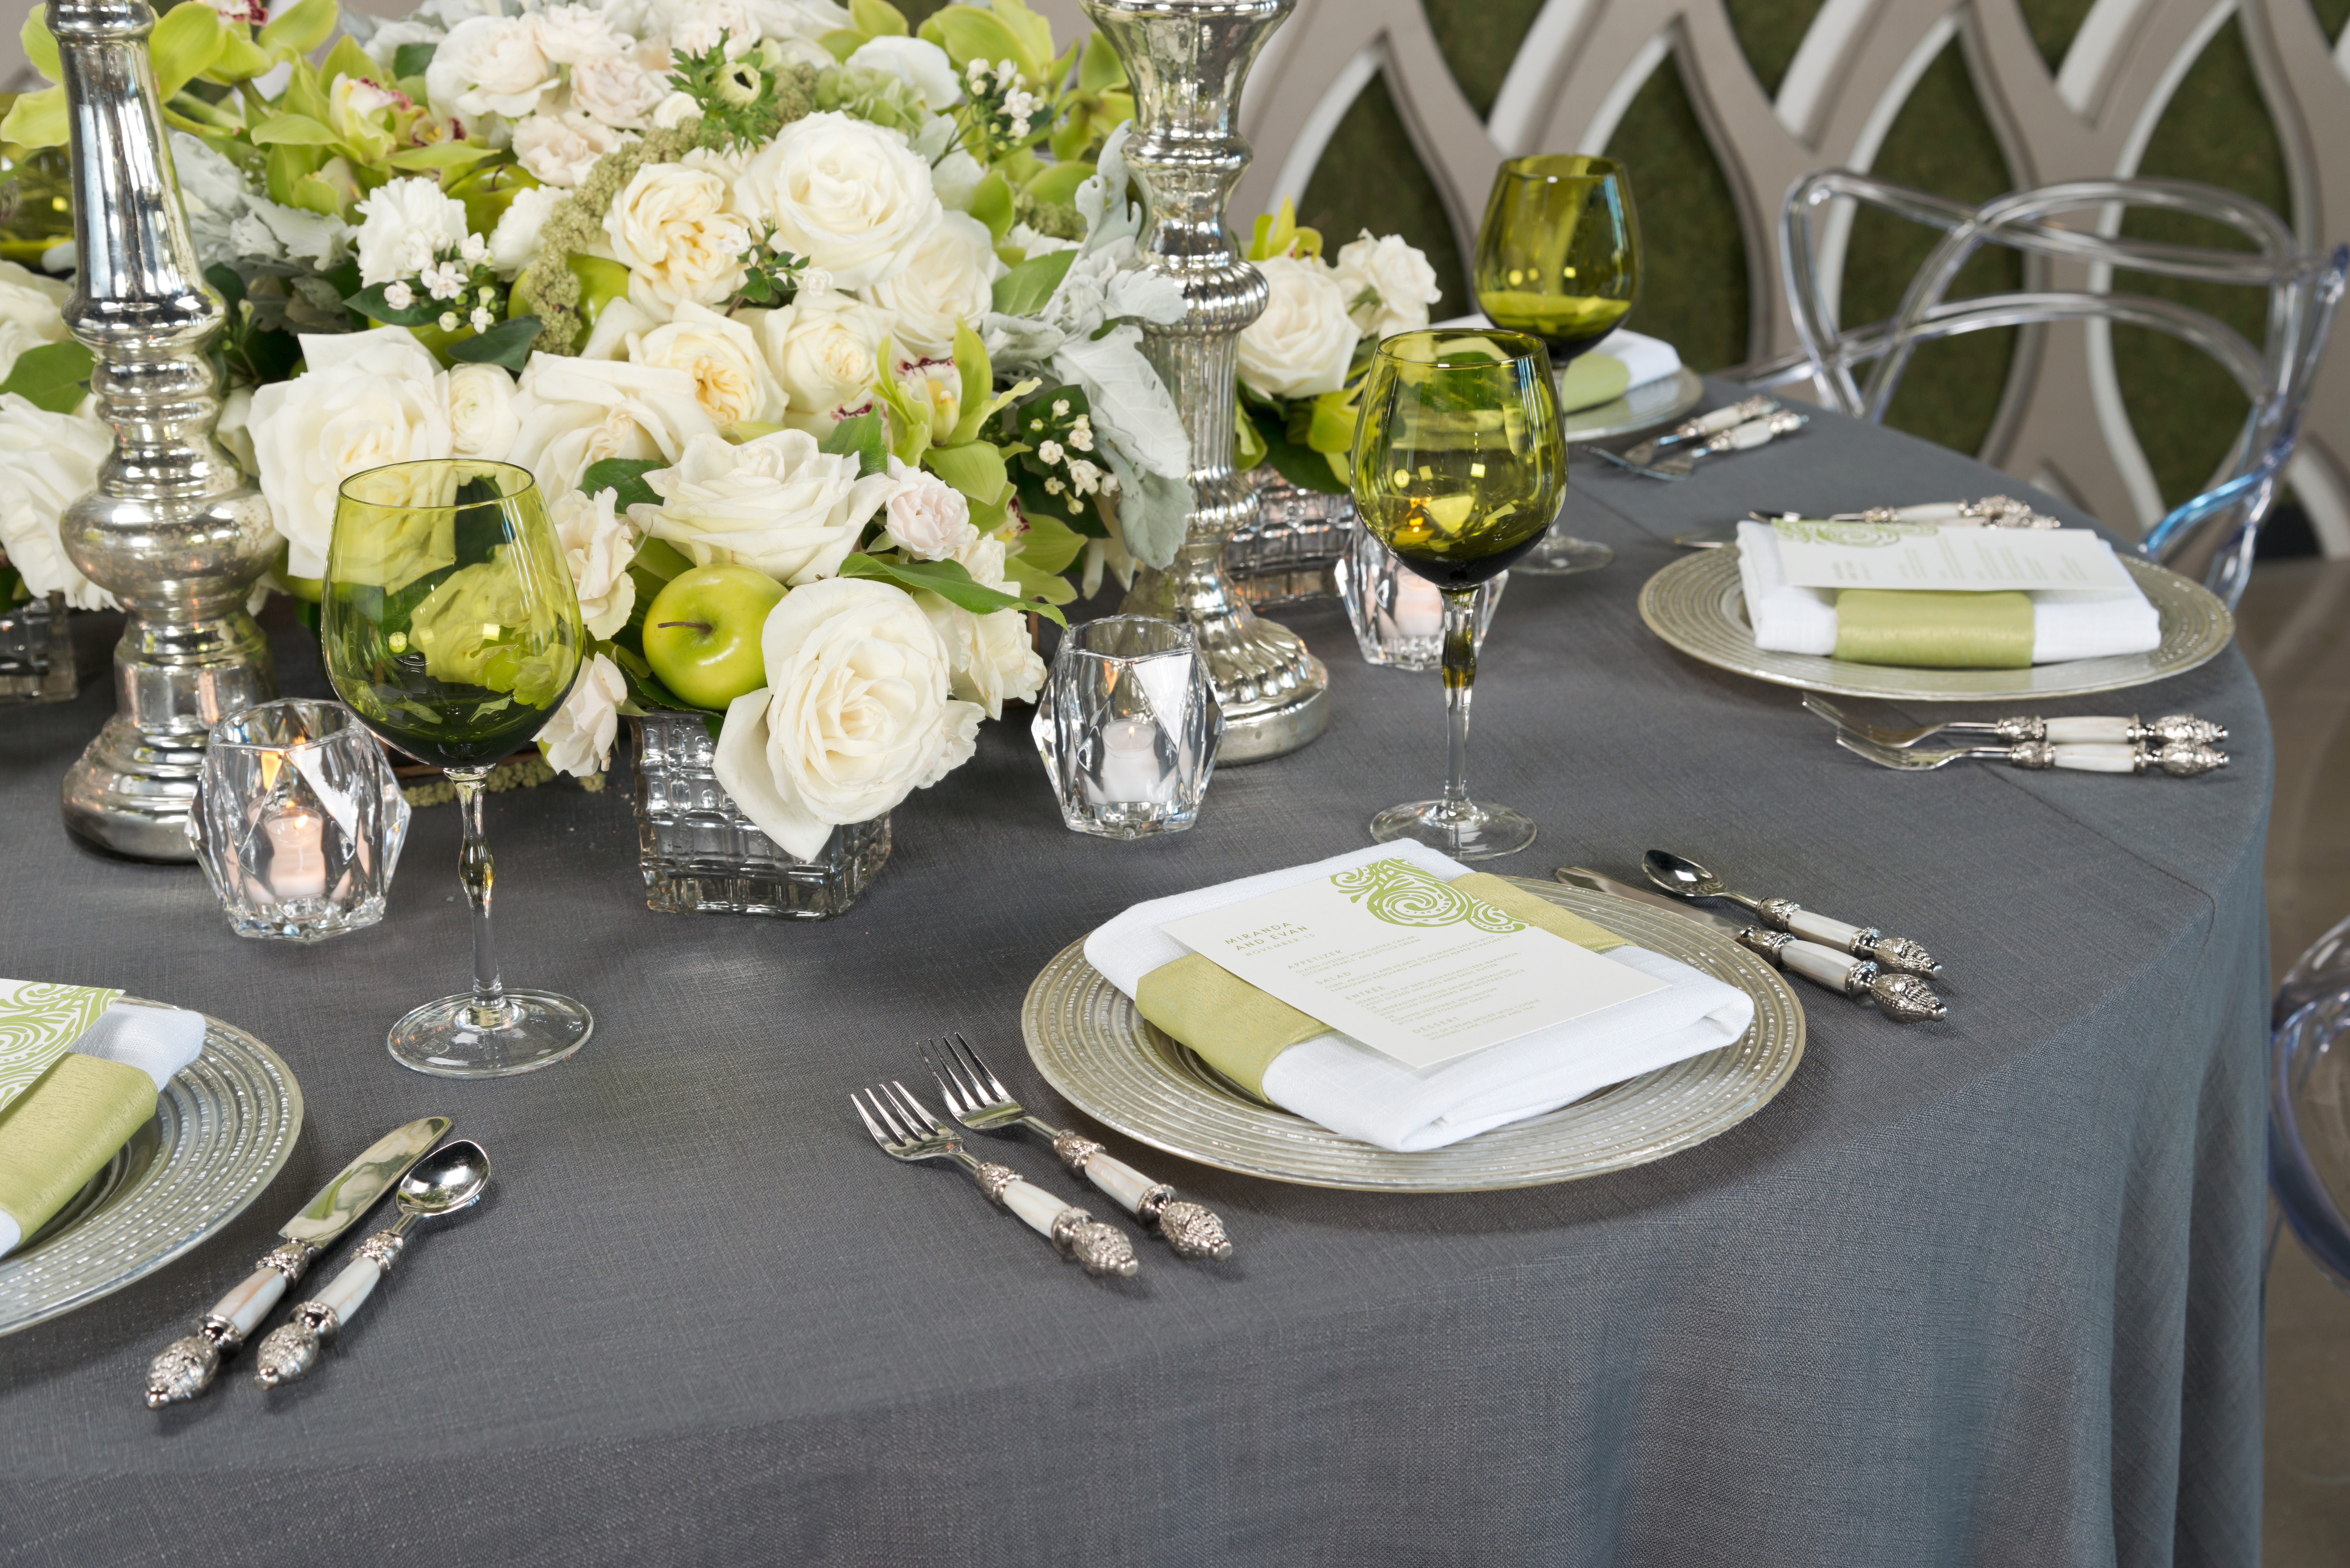 BBJ Linen Everlast Kehoe Collection - Steel Brimble Tablescape 2